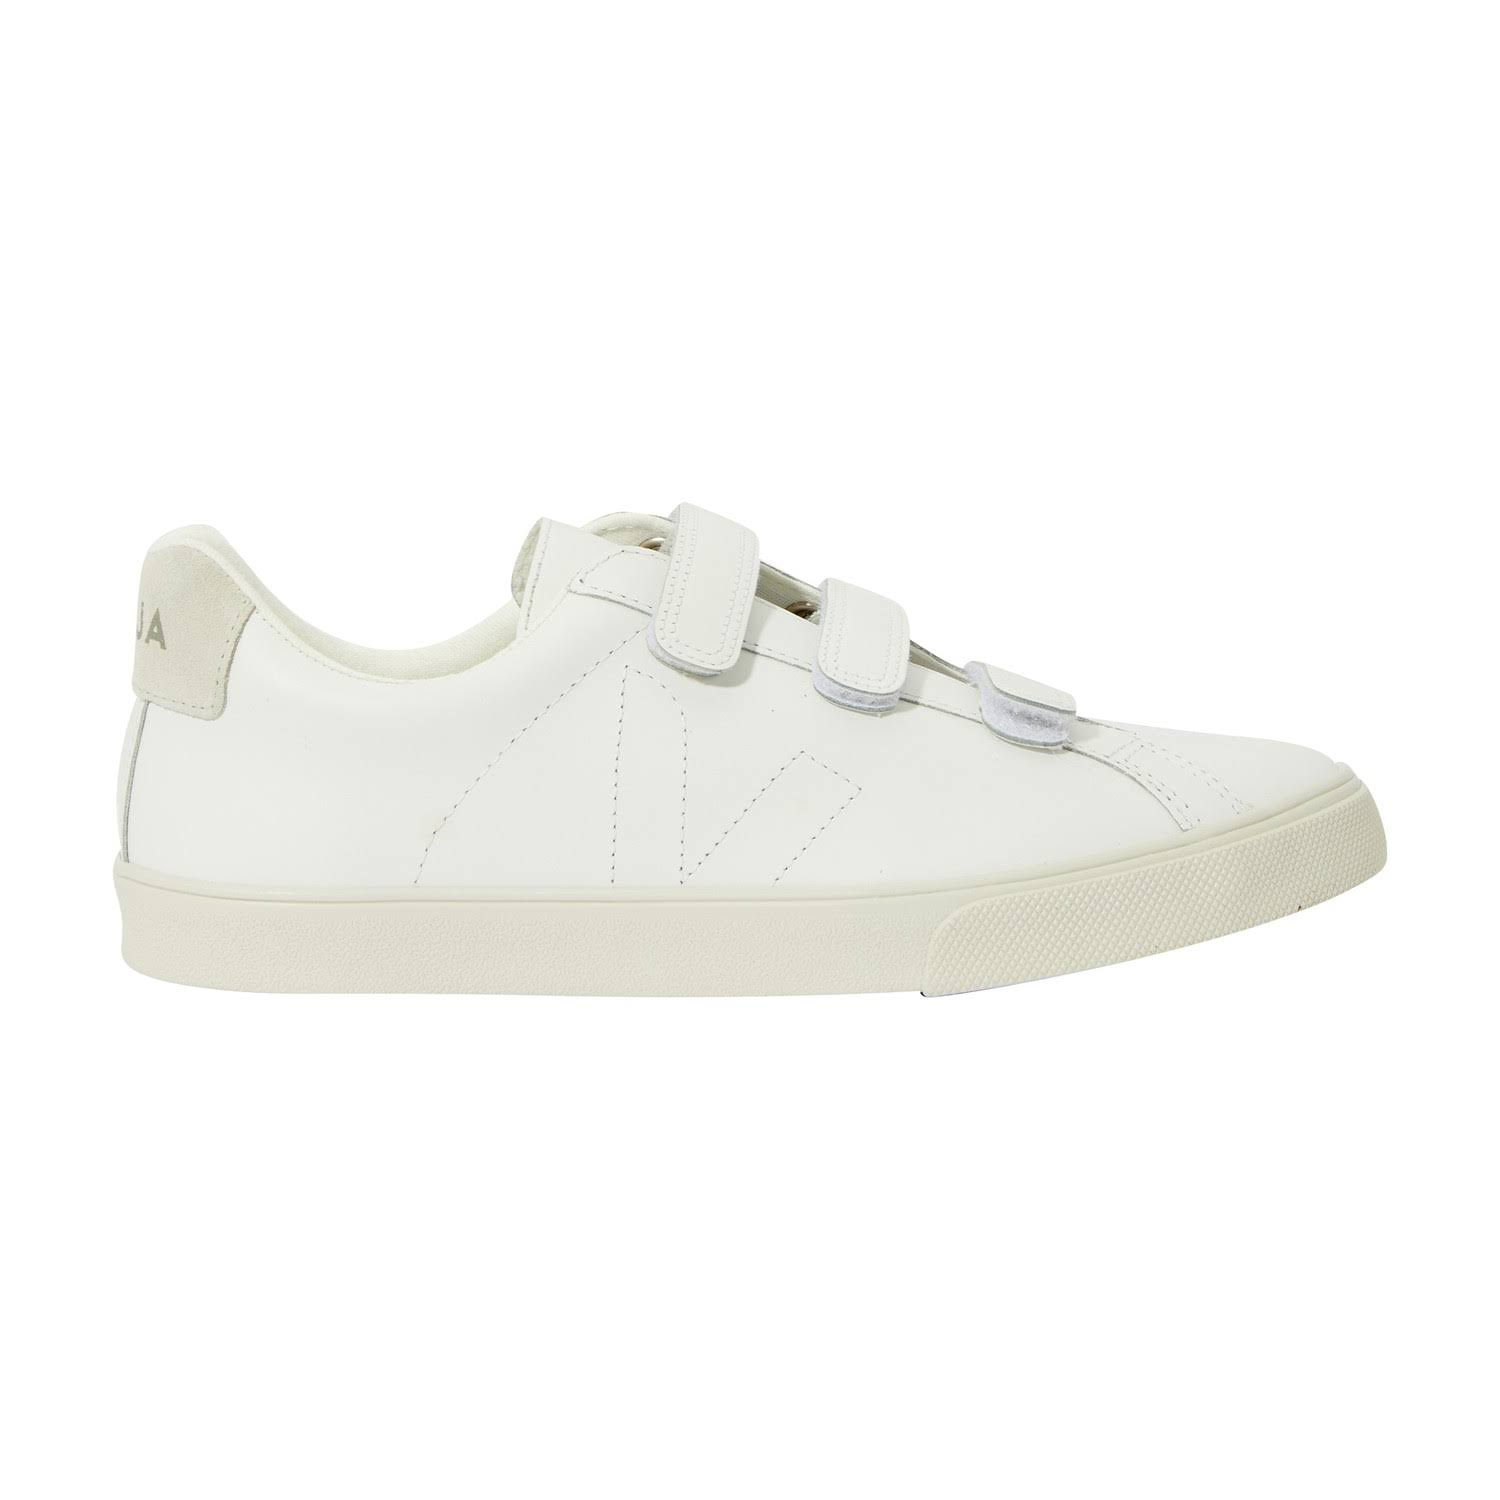 Veja Esplar Leather 3-Lock Womens Extra White Trainers